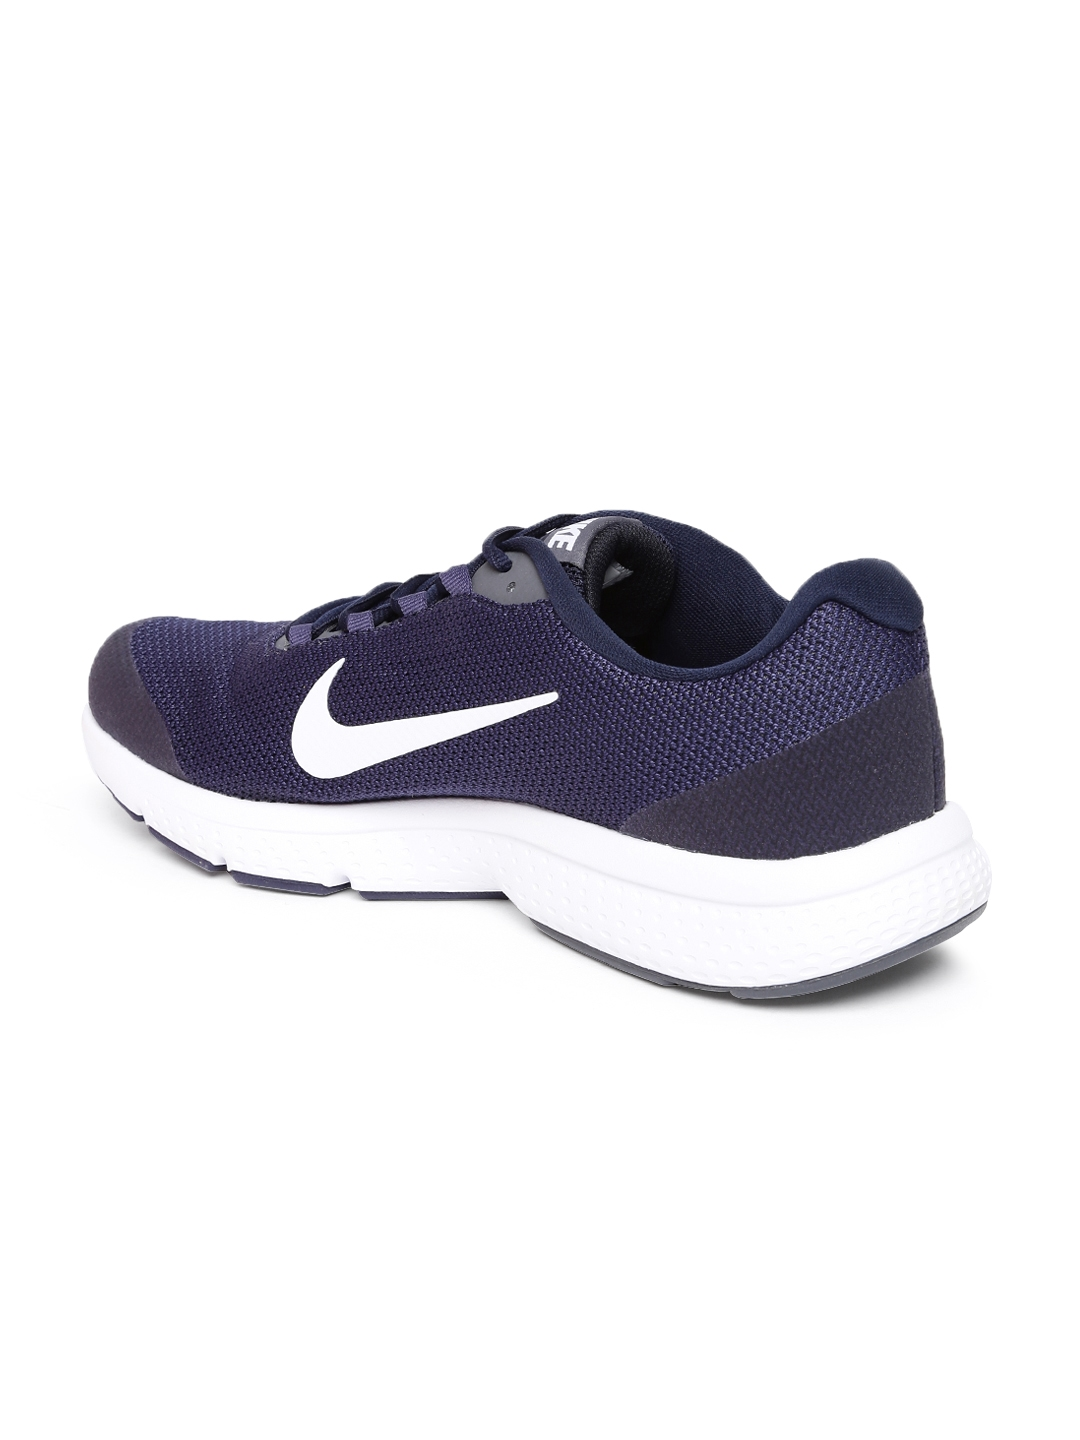 8016b383598 Buy Nike Men Navy Blue RUNALLDAY Running Shoes - Sports Shoes for ...